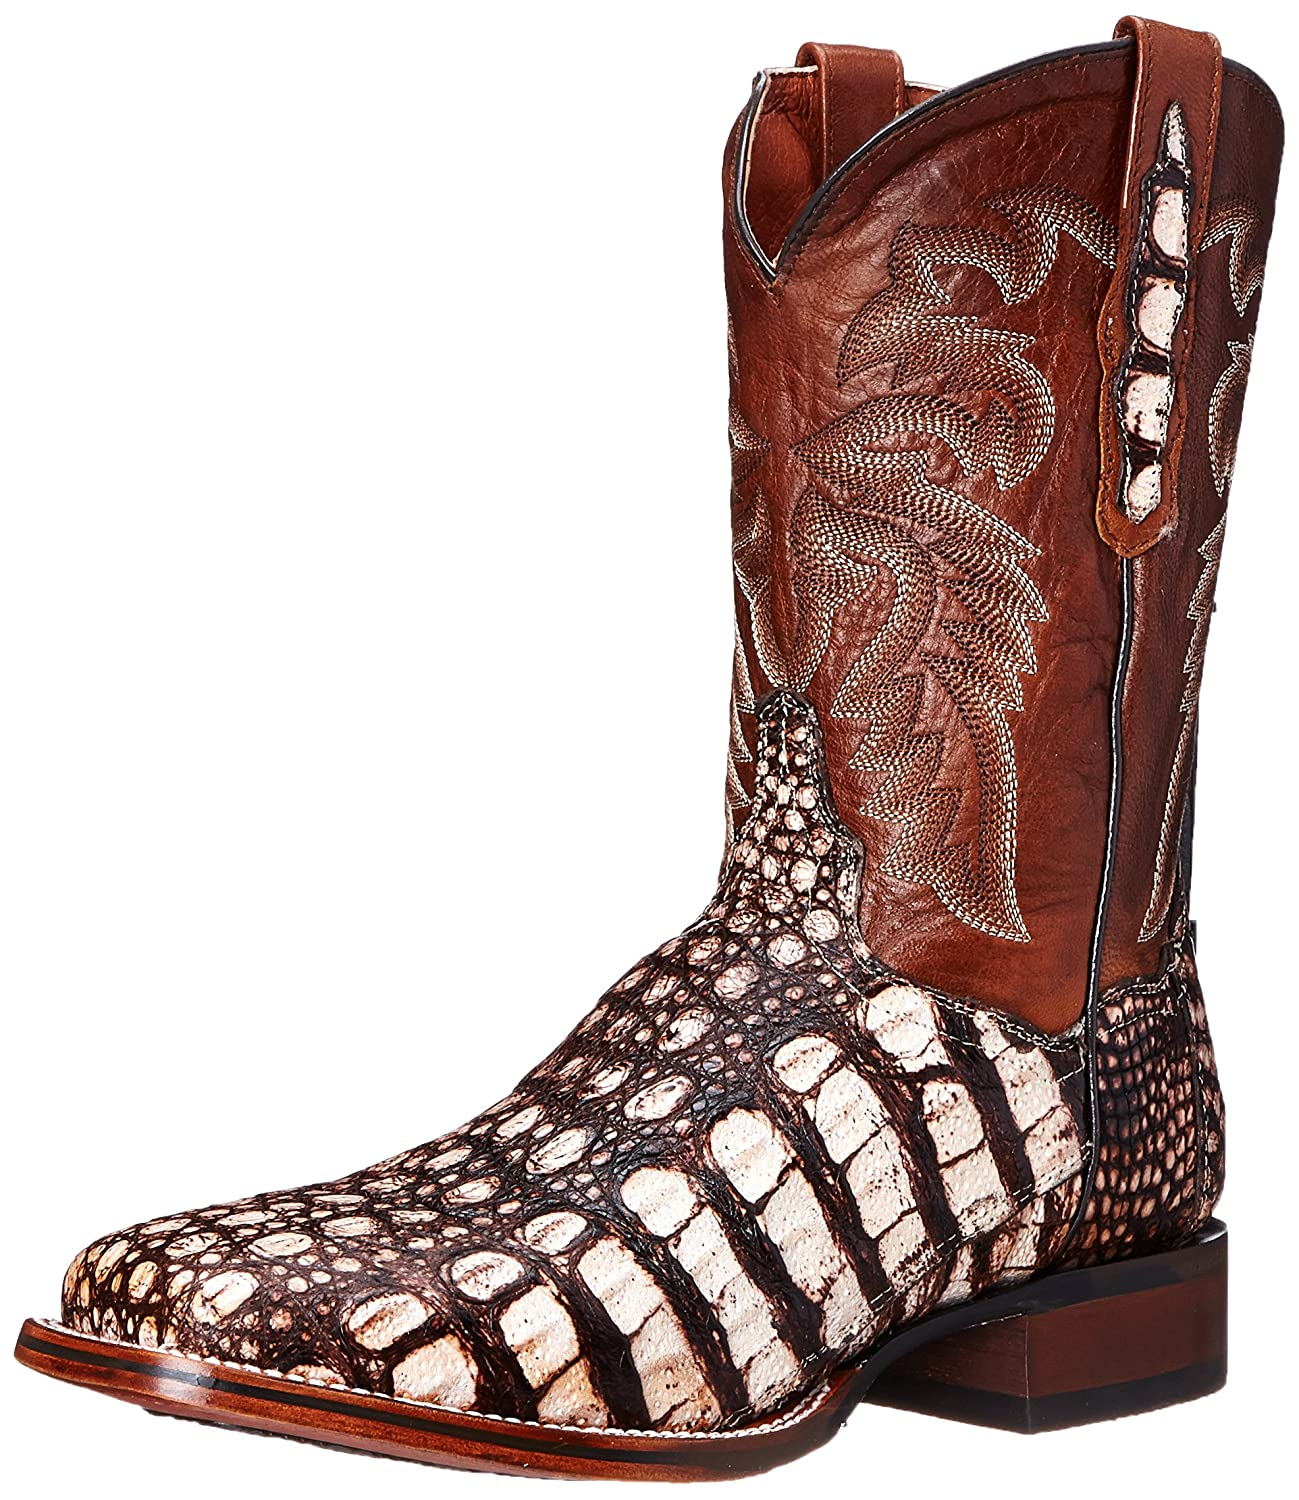 Dan Post Men's Everglades SQ Western Boot B00RIER41Y 10.5 XW US|Camel/Pecan